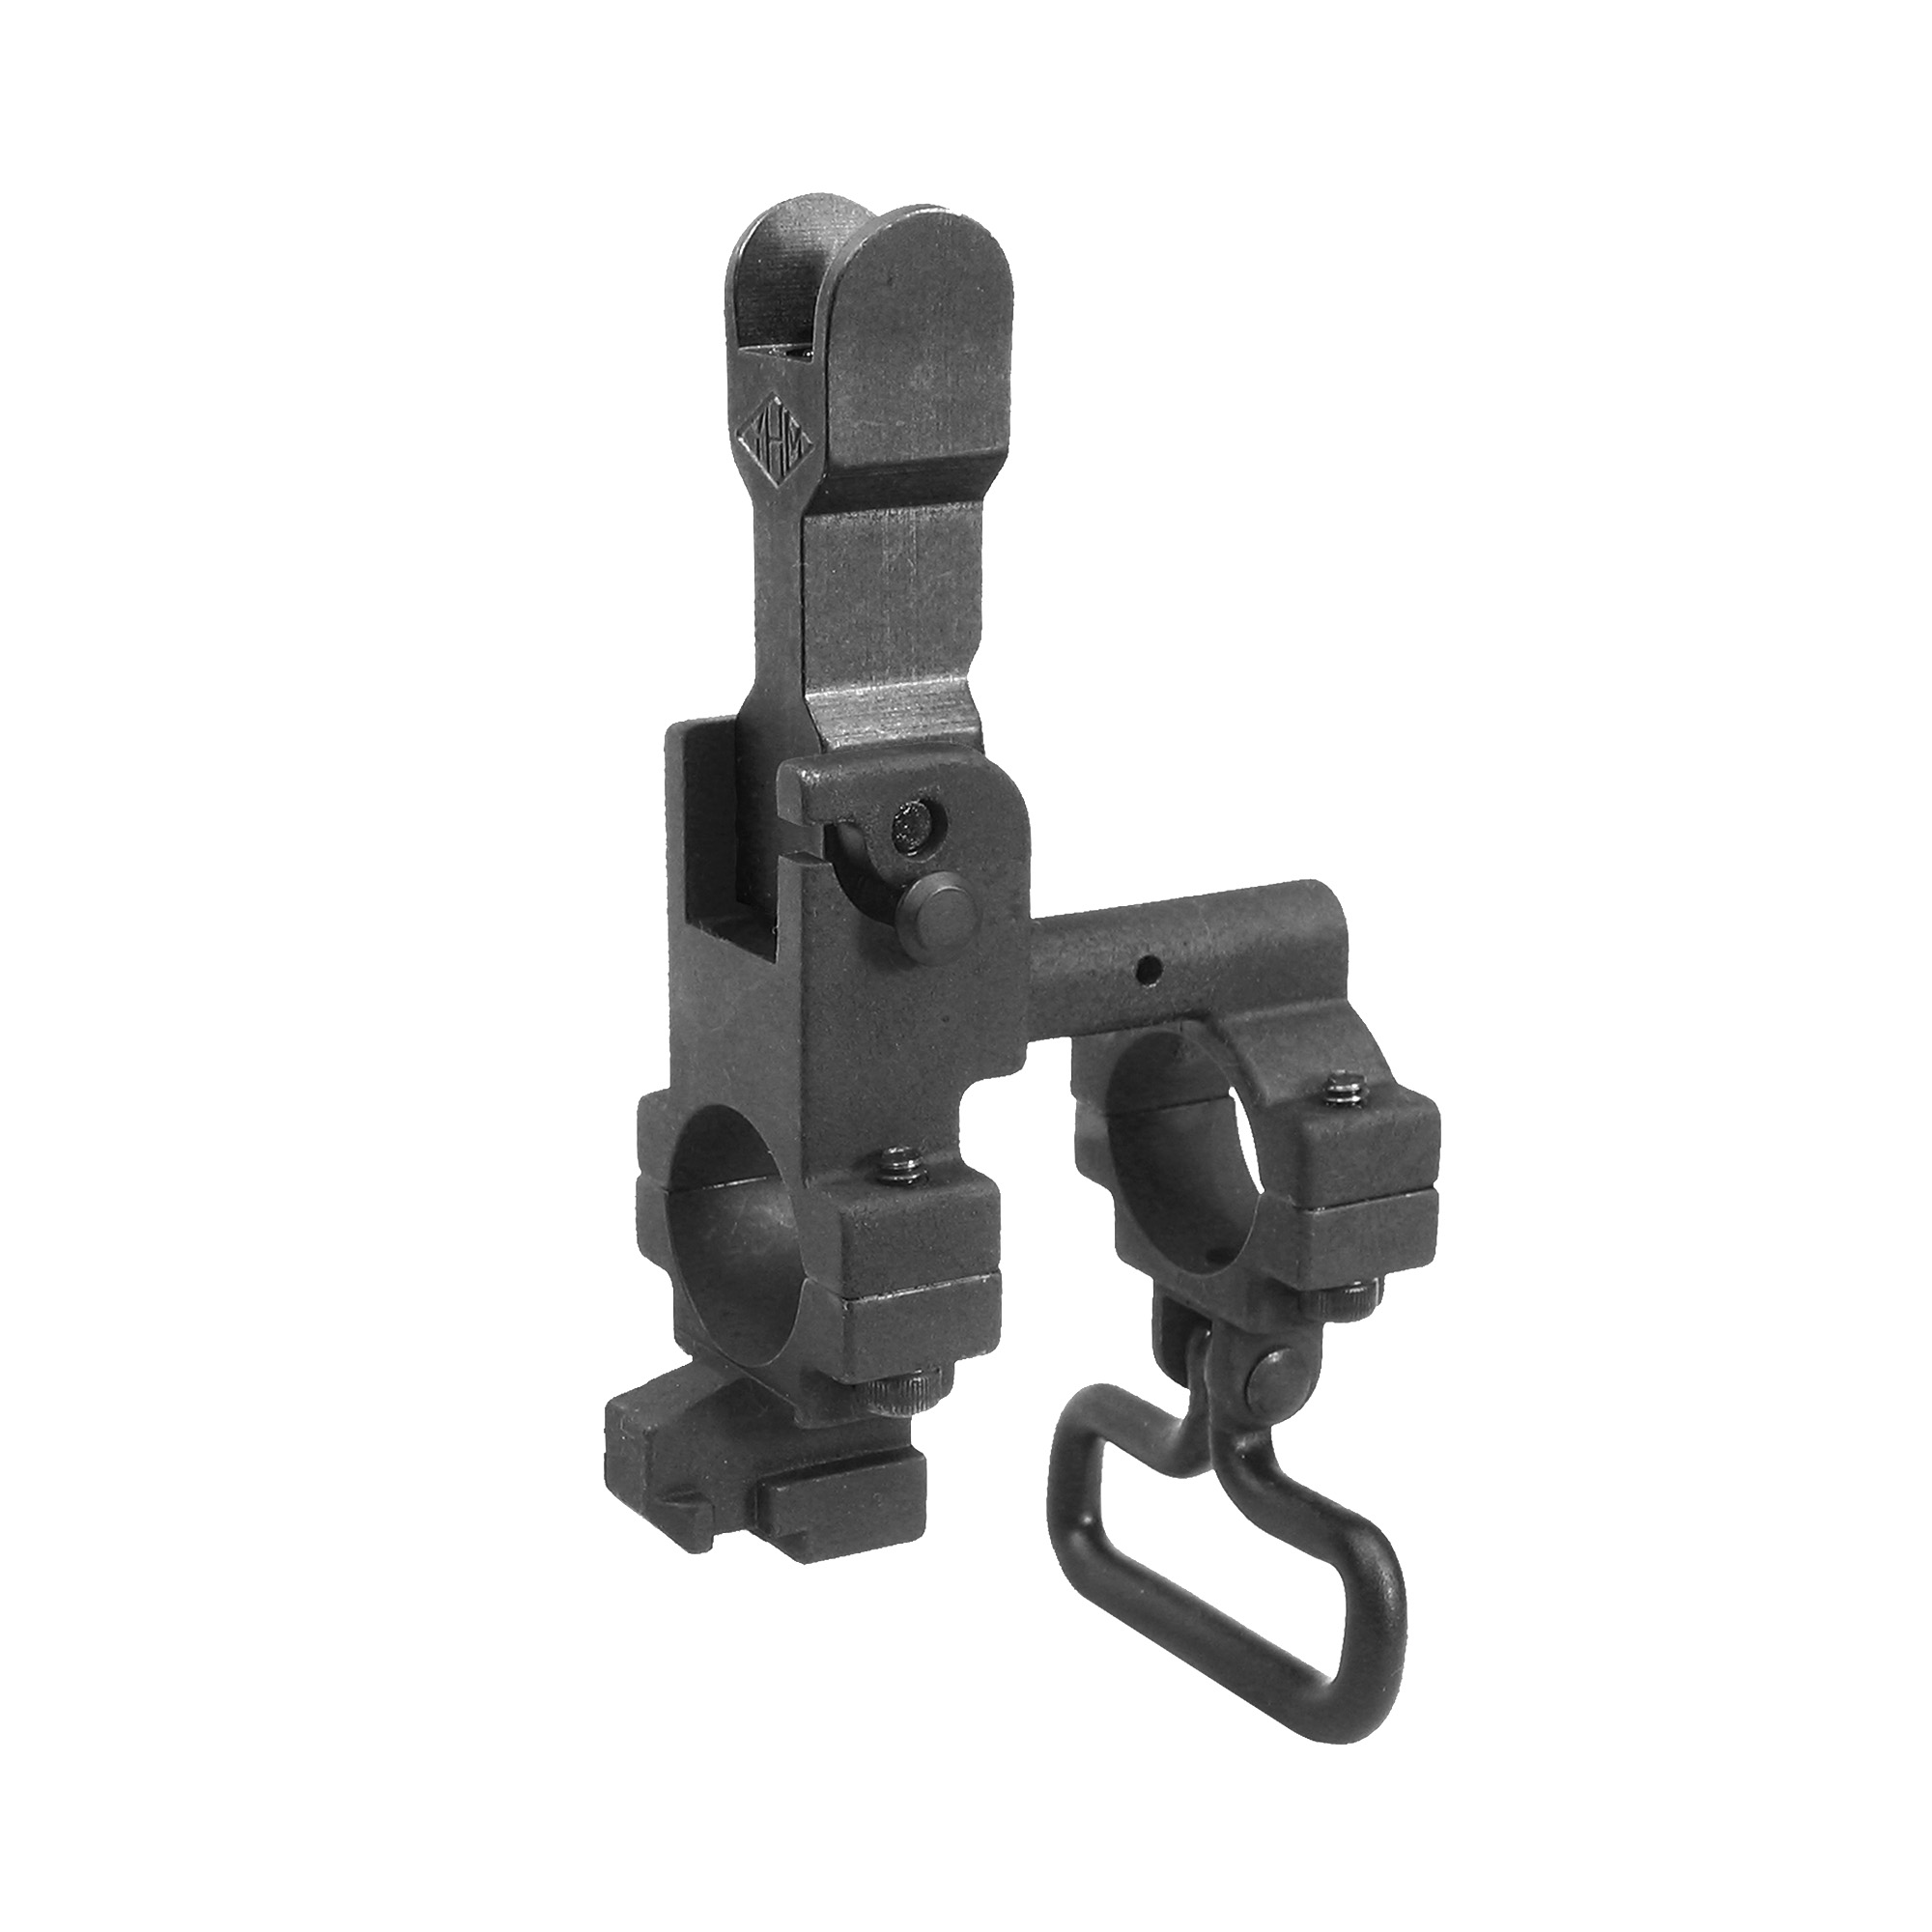 AR-15 Front Flip Sight Tower- These front sights feature either a round hooded front sight guard that allows for fast and accurate sighting or a standard style front sight guard. They sight base features all steel construction for superior strength in demanding conditions. The flip sight is easily concealed with the push of a button. It flips up and locks in the deployed position. This sight accepts all standard AR sight posts and hardware (Included). With this setup you get the convenience of a flip front sight with the same weight as a standard AR sight tower. This sight's two-piece design allows it to be mounted on firearms with pinned and welded muzzle accessories